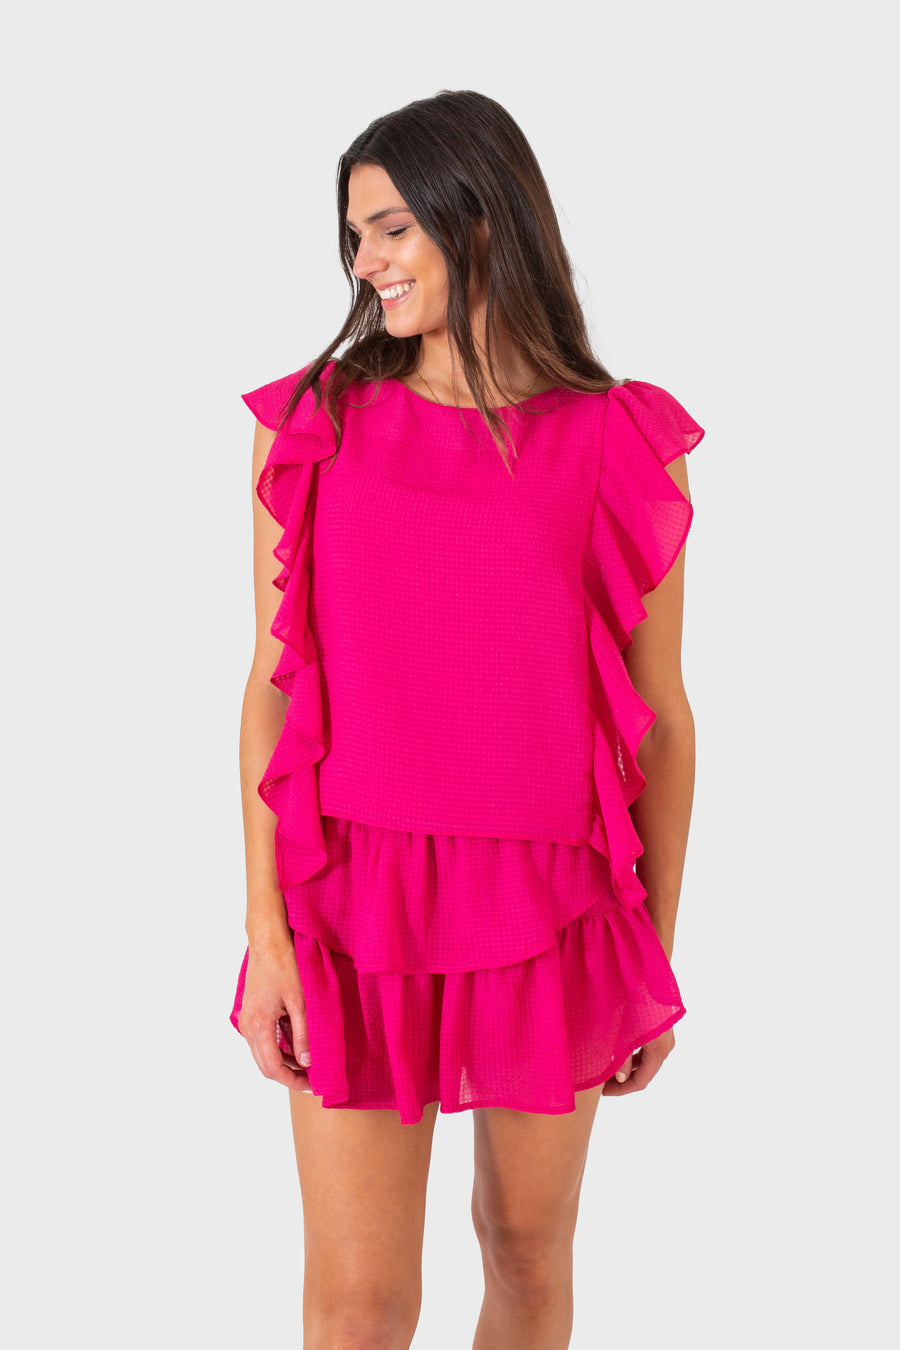 CARA TOP PINK CHIFFON *LIMITED*EDITION*